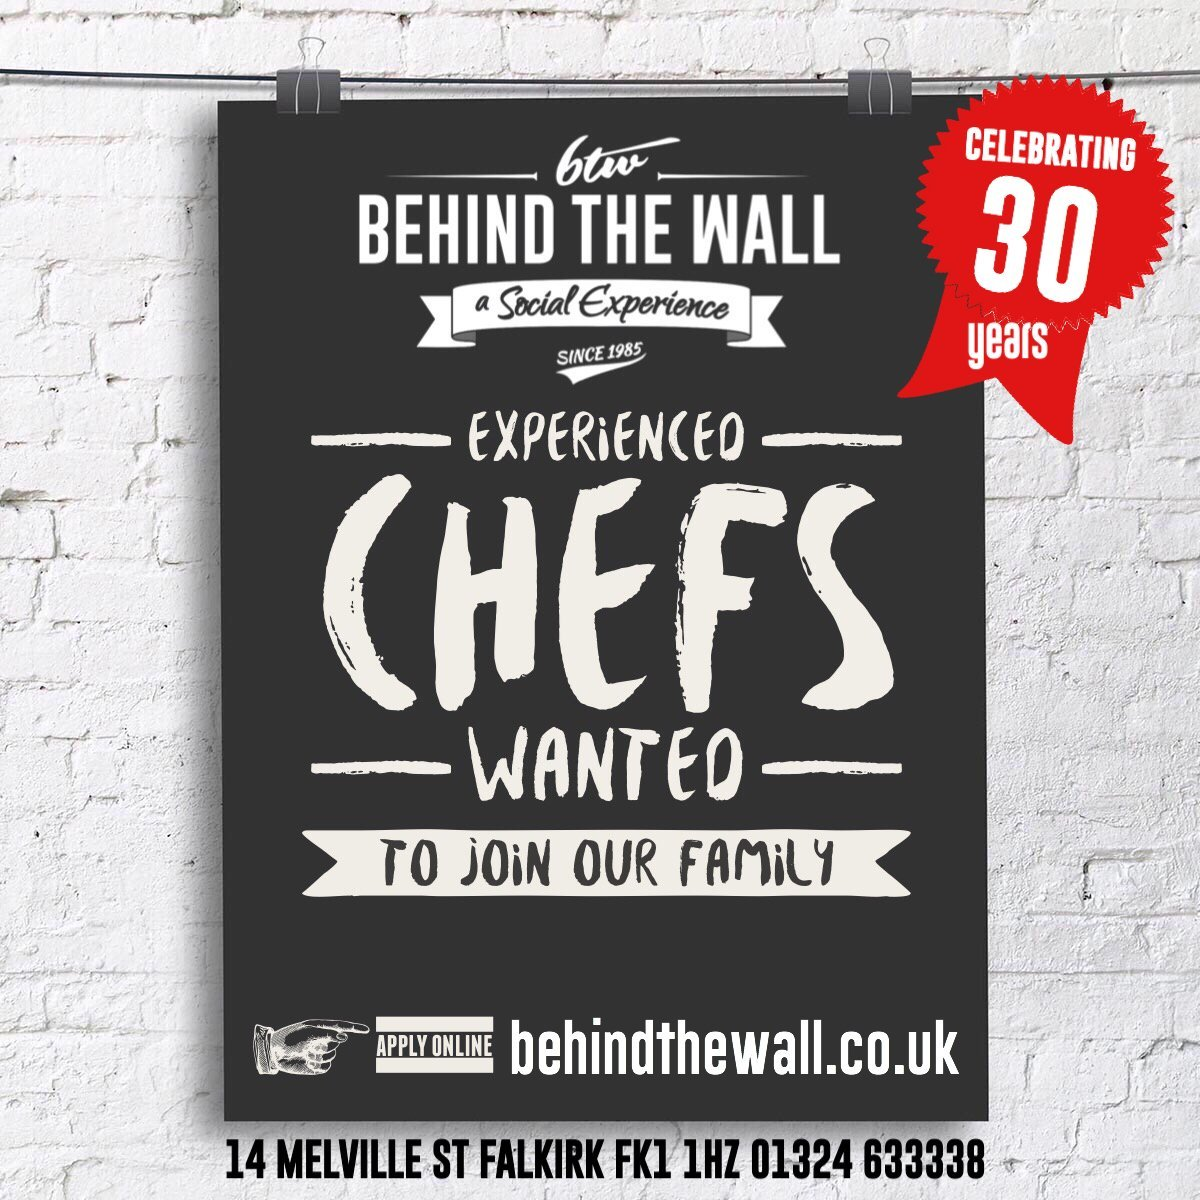 Behind the wall looking for experienced chefs